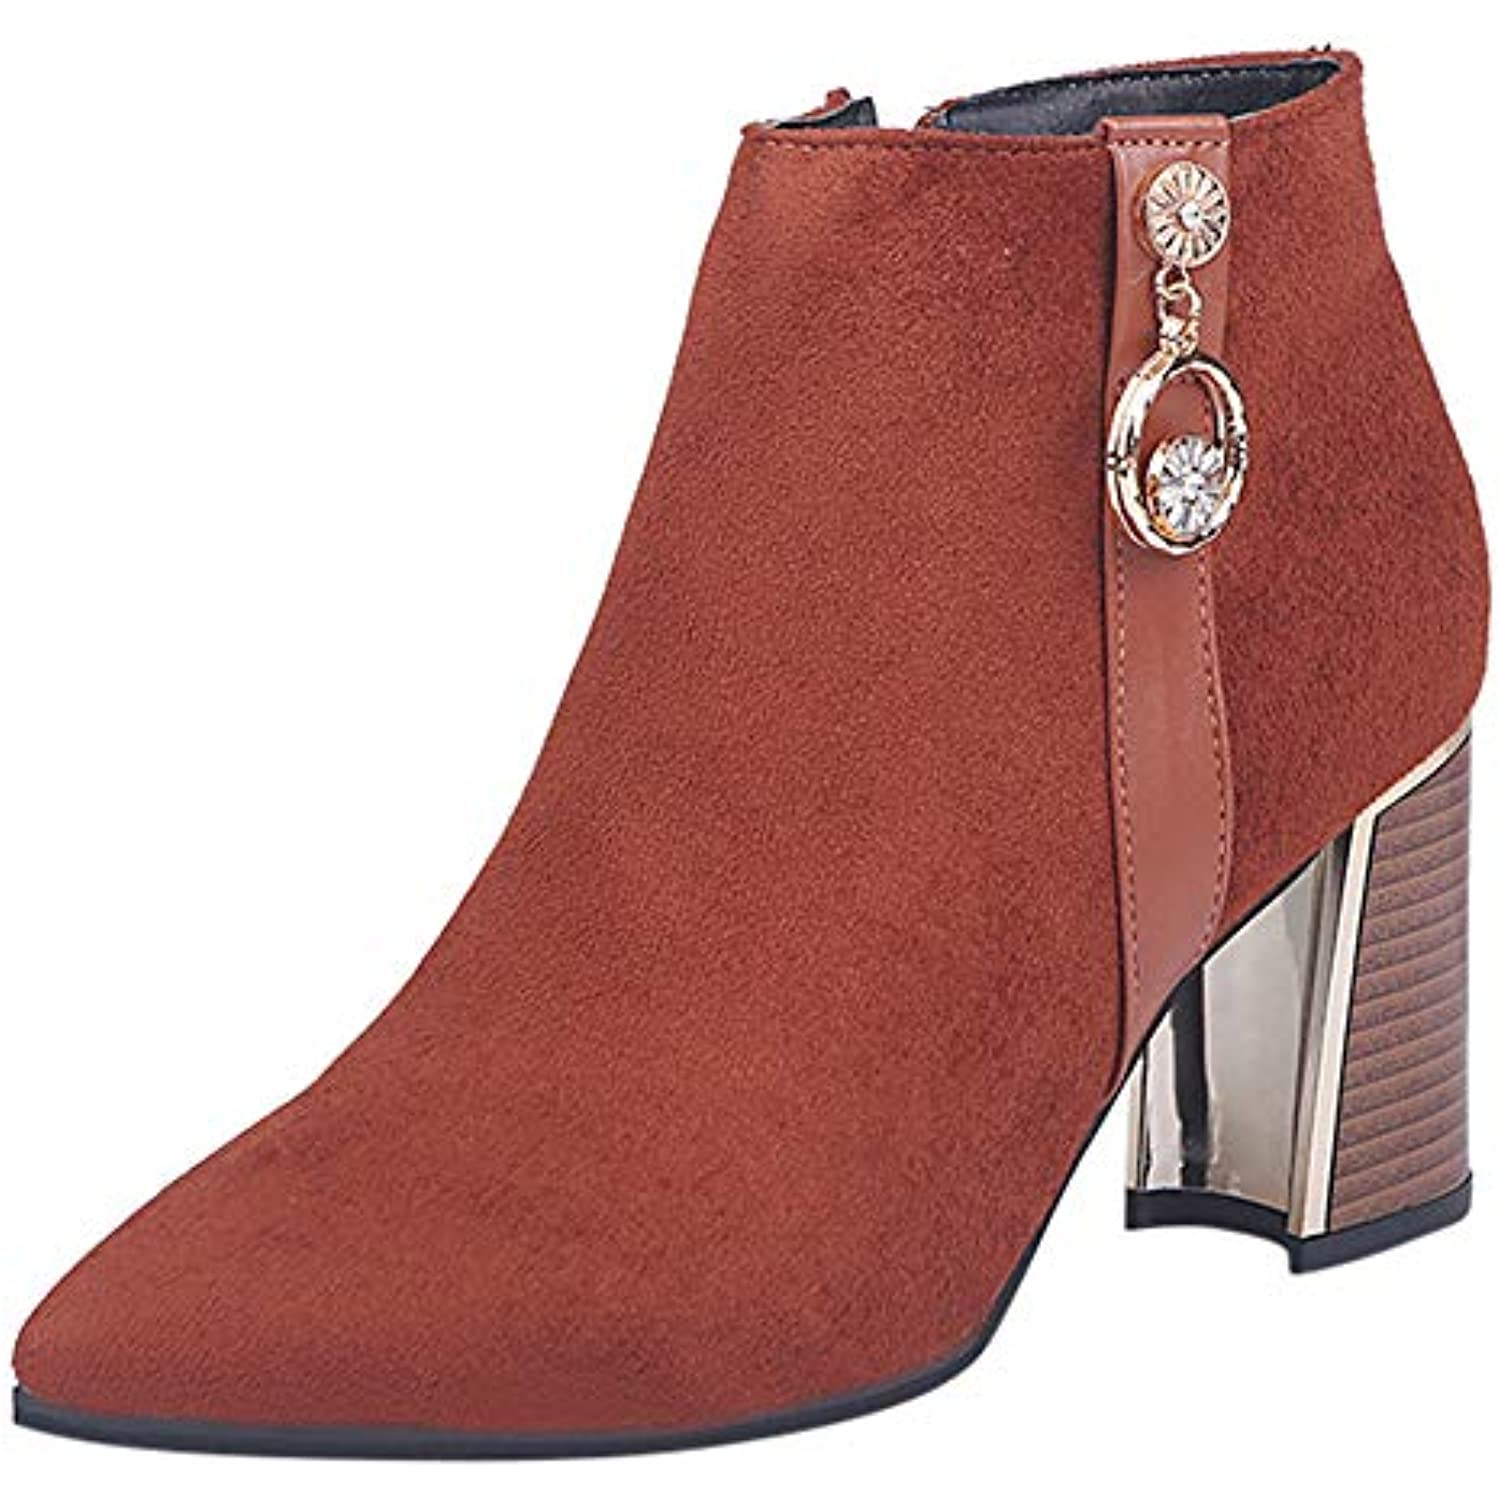 trada-botte Sauvages femme Scrub Bottes Sauvages trada-botte épais Bottines Femmes Hiver Bottines Chaud Bowknot Neige Automne Chaussures... - B07JN4PYJ7 - 32cd86